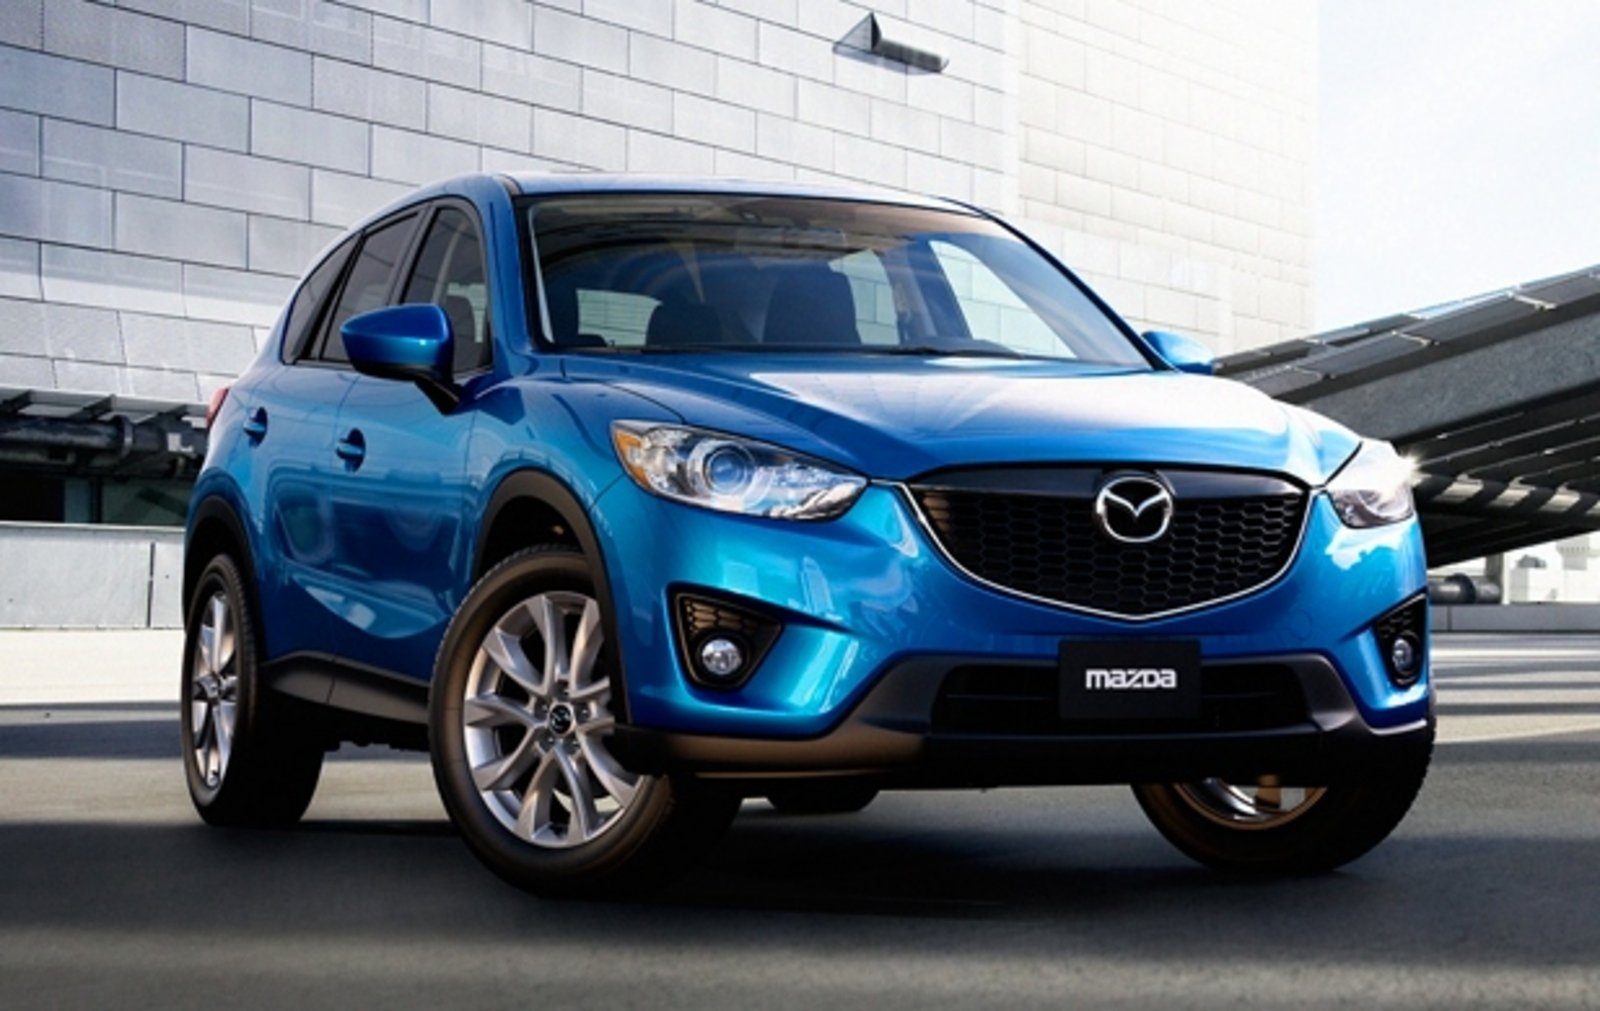 2014 mazda cx 5 review top speed. Black Bedroom Furniture Sets. Home Design Ideas